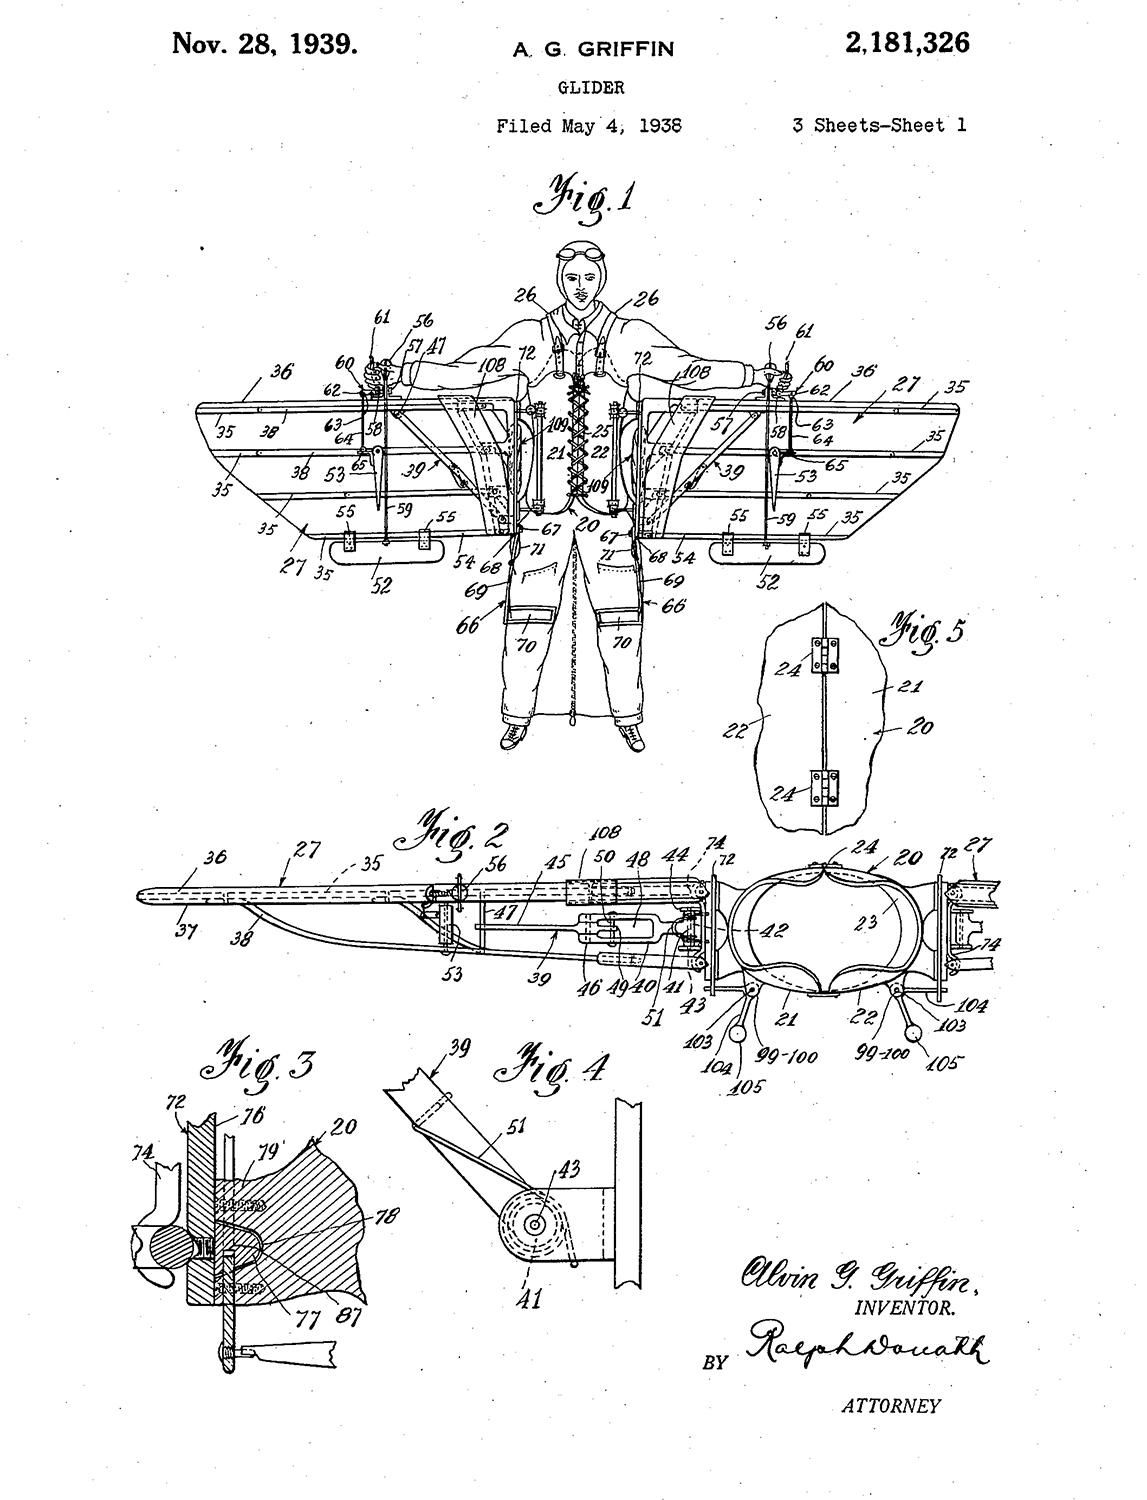 A.G. Griffin Glider Patent, May 4, 1938.